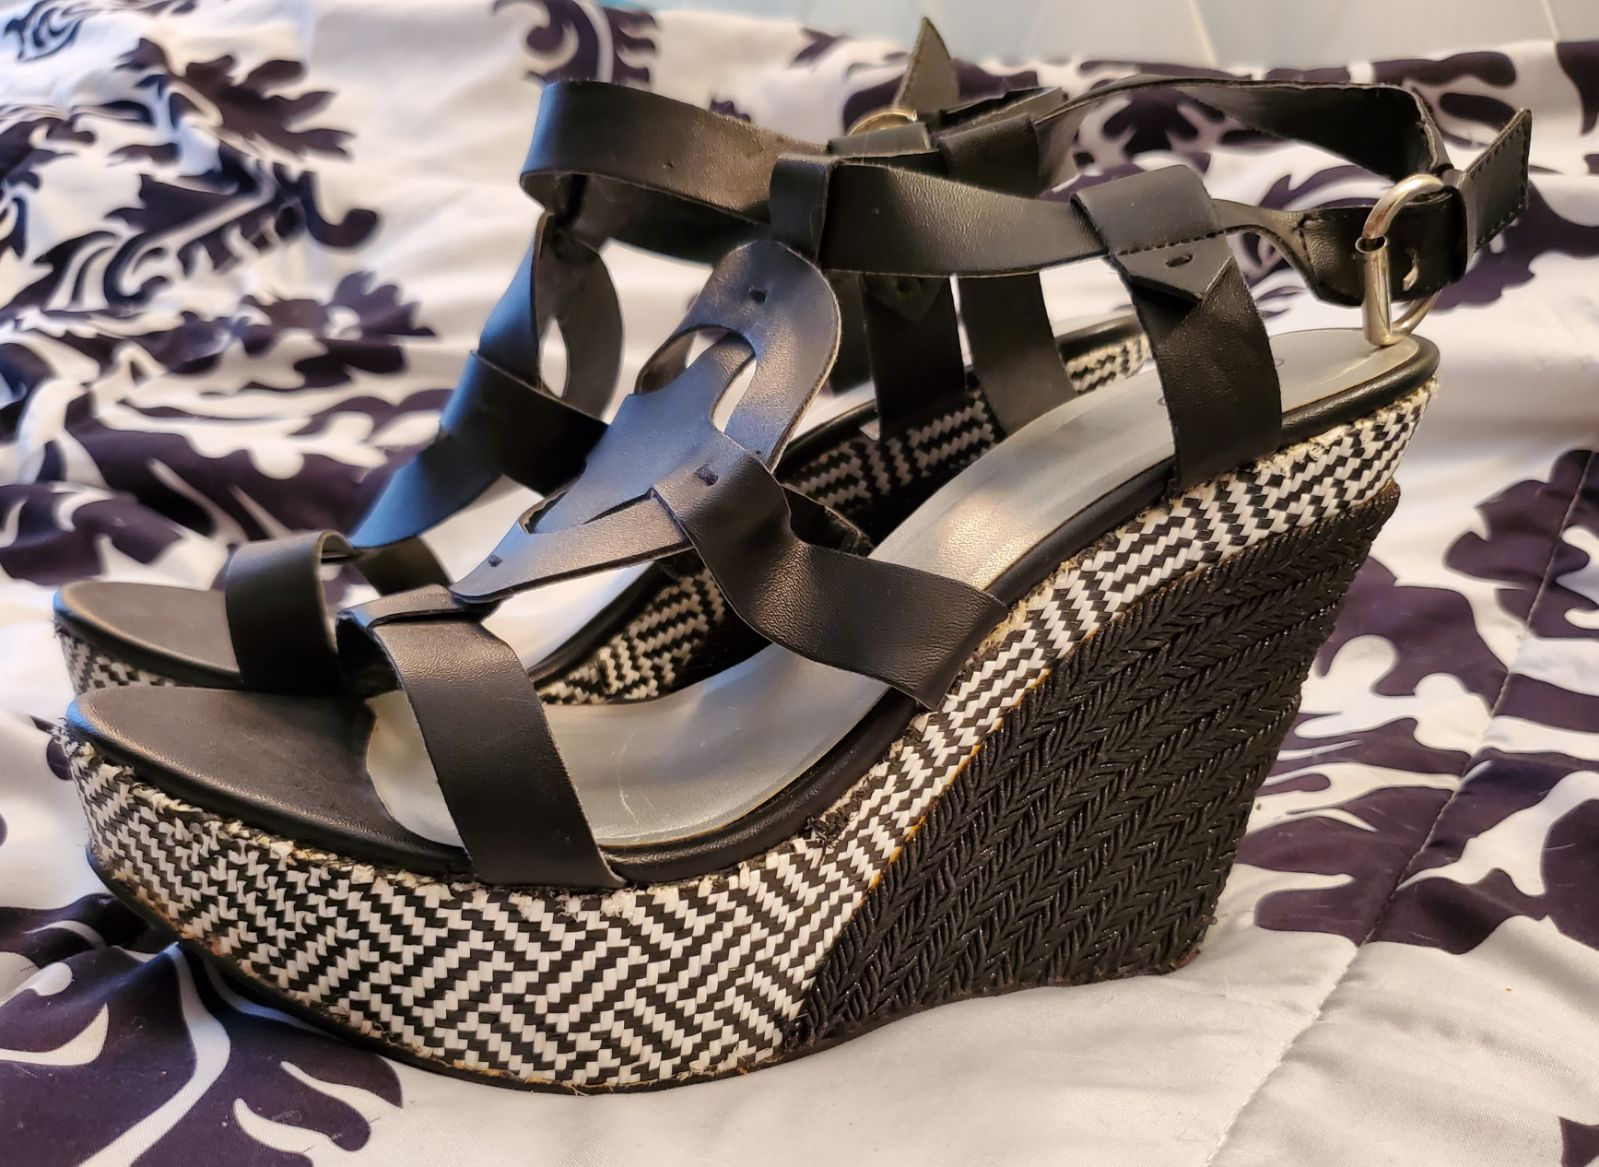 CATO BLACK AND WHITE WEDGE HEELS - SIZE